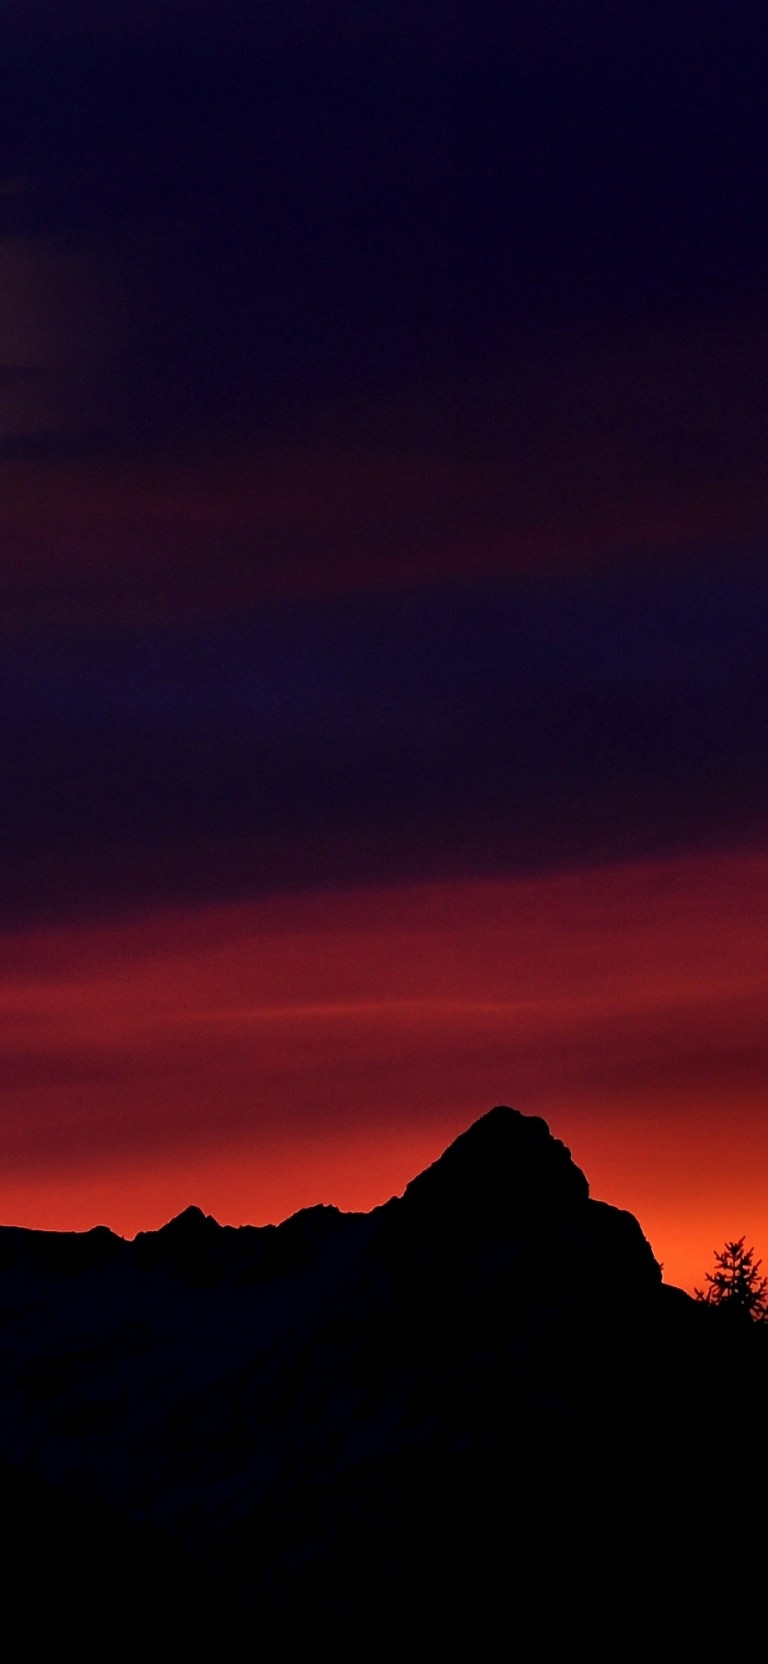 Afterglow Black and Red Amoled Sunset Wallpaper Android